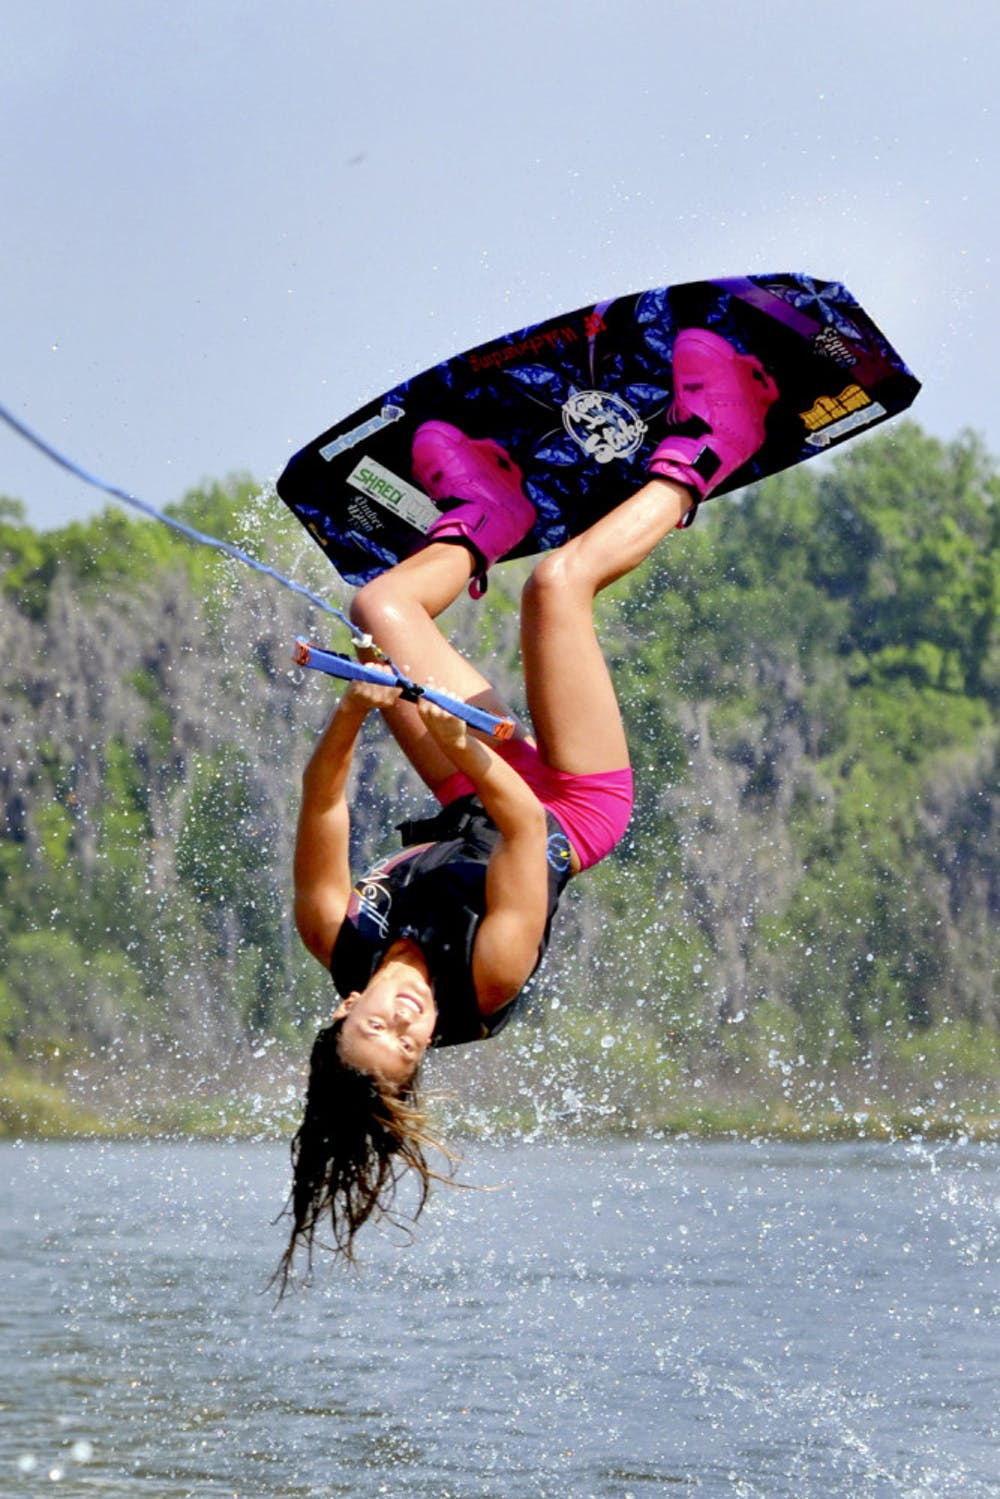 <p>Dixie Smith, a 20-year-old UF biology senior, performs a wakeboard stunt on Lake Wauberg.</p>